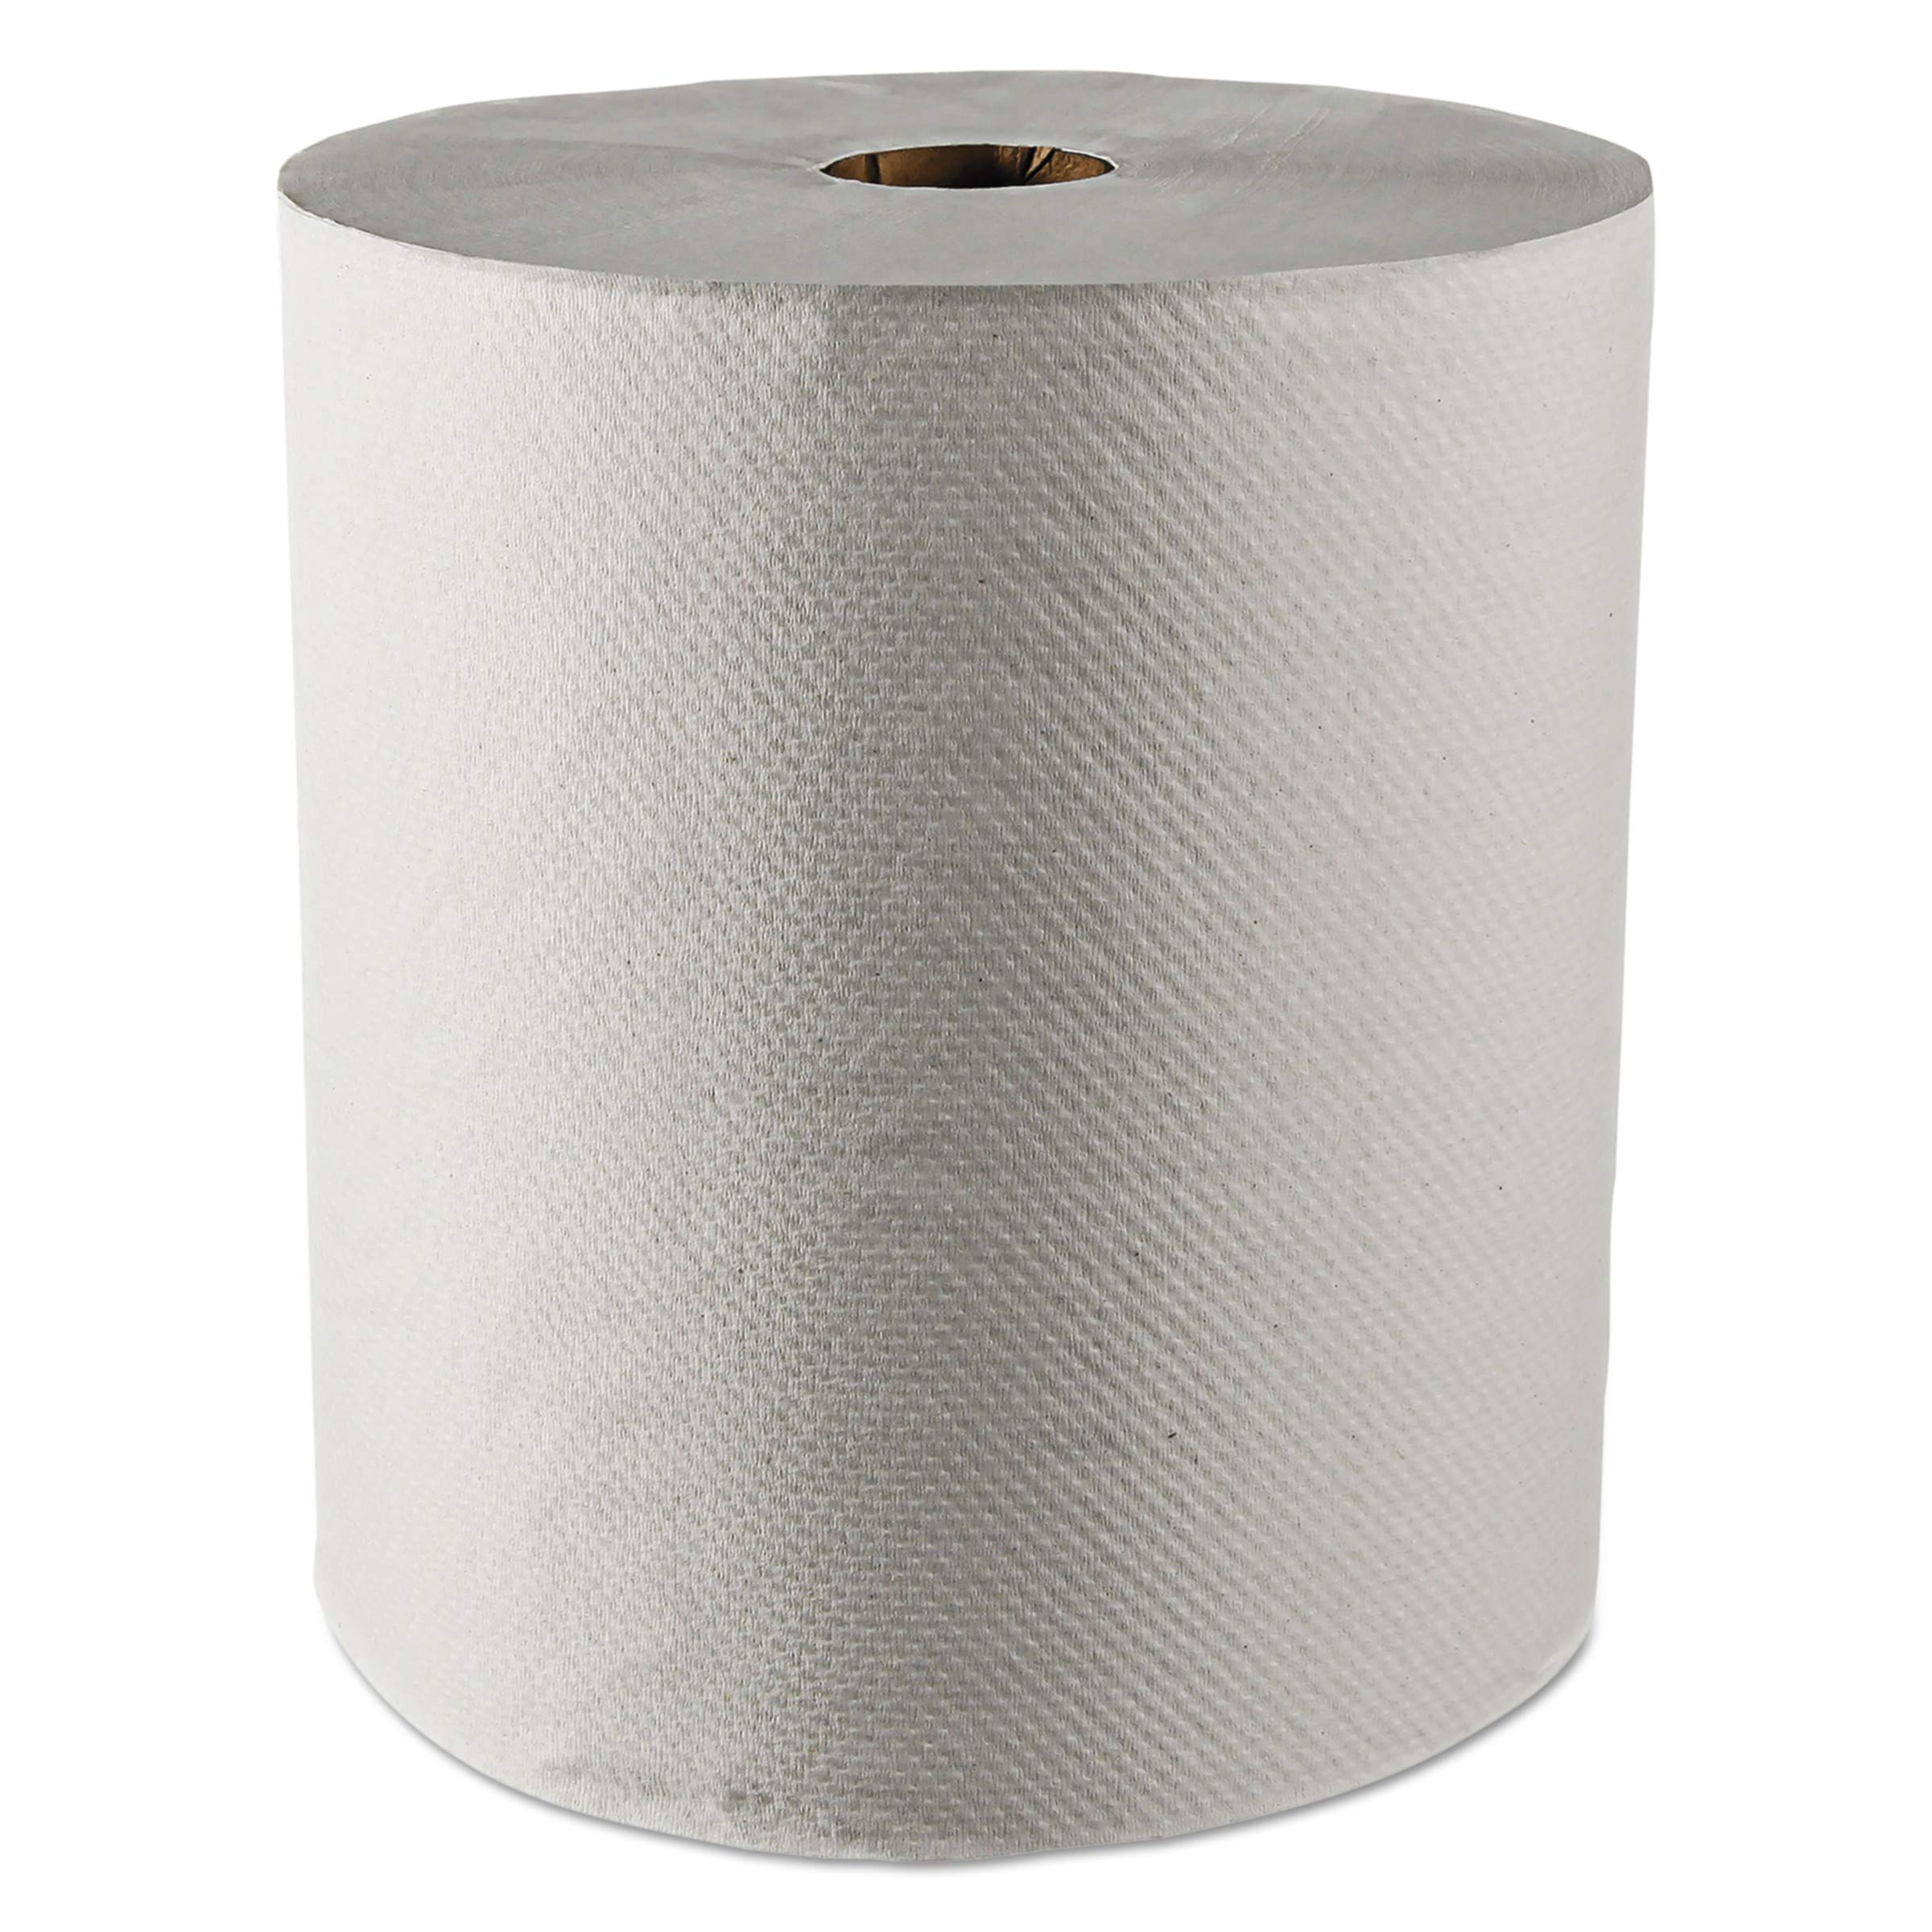 Scott 01052 Hard Roll Towels, 100% Recycled, 1.5'' Core, White, 8'' x 800ft (Case of 12 Rolls)